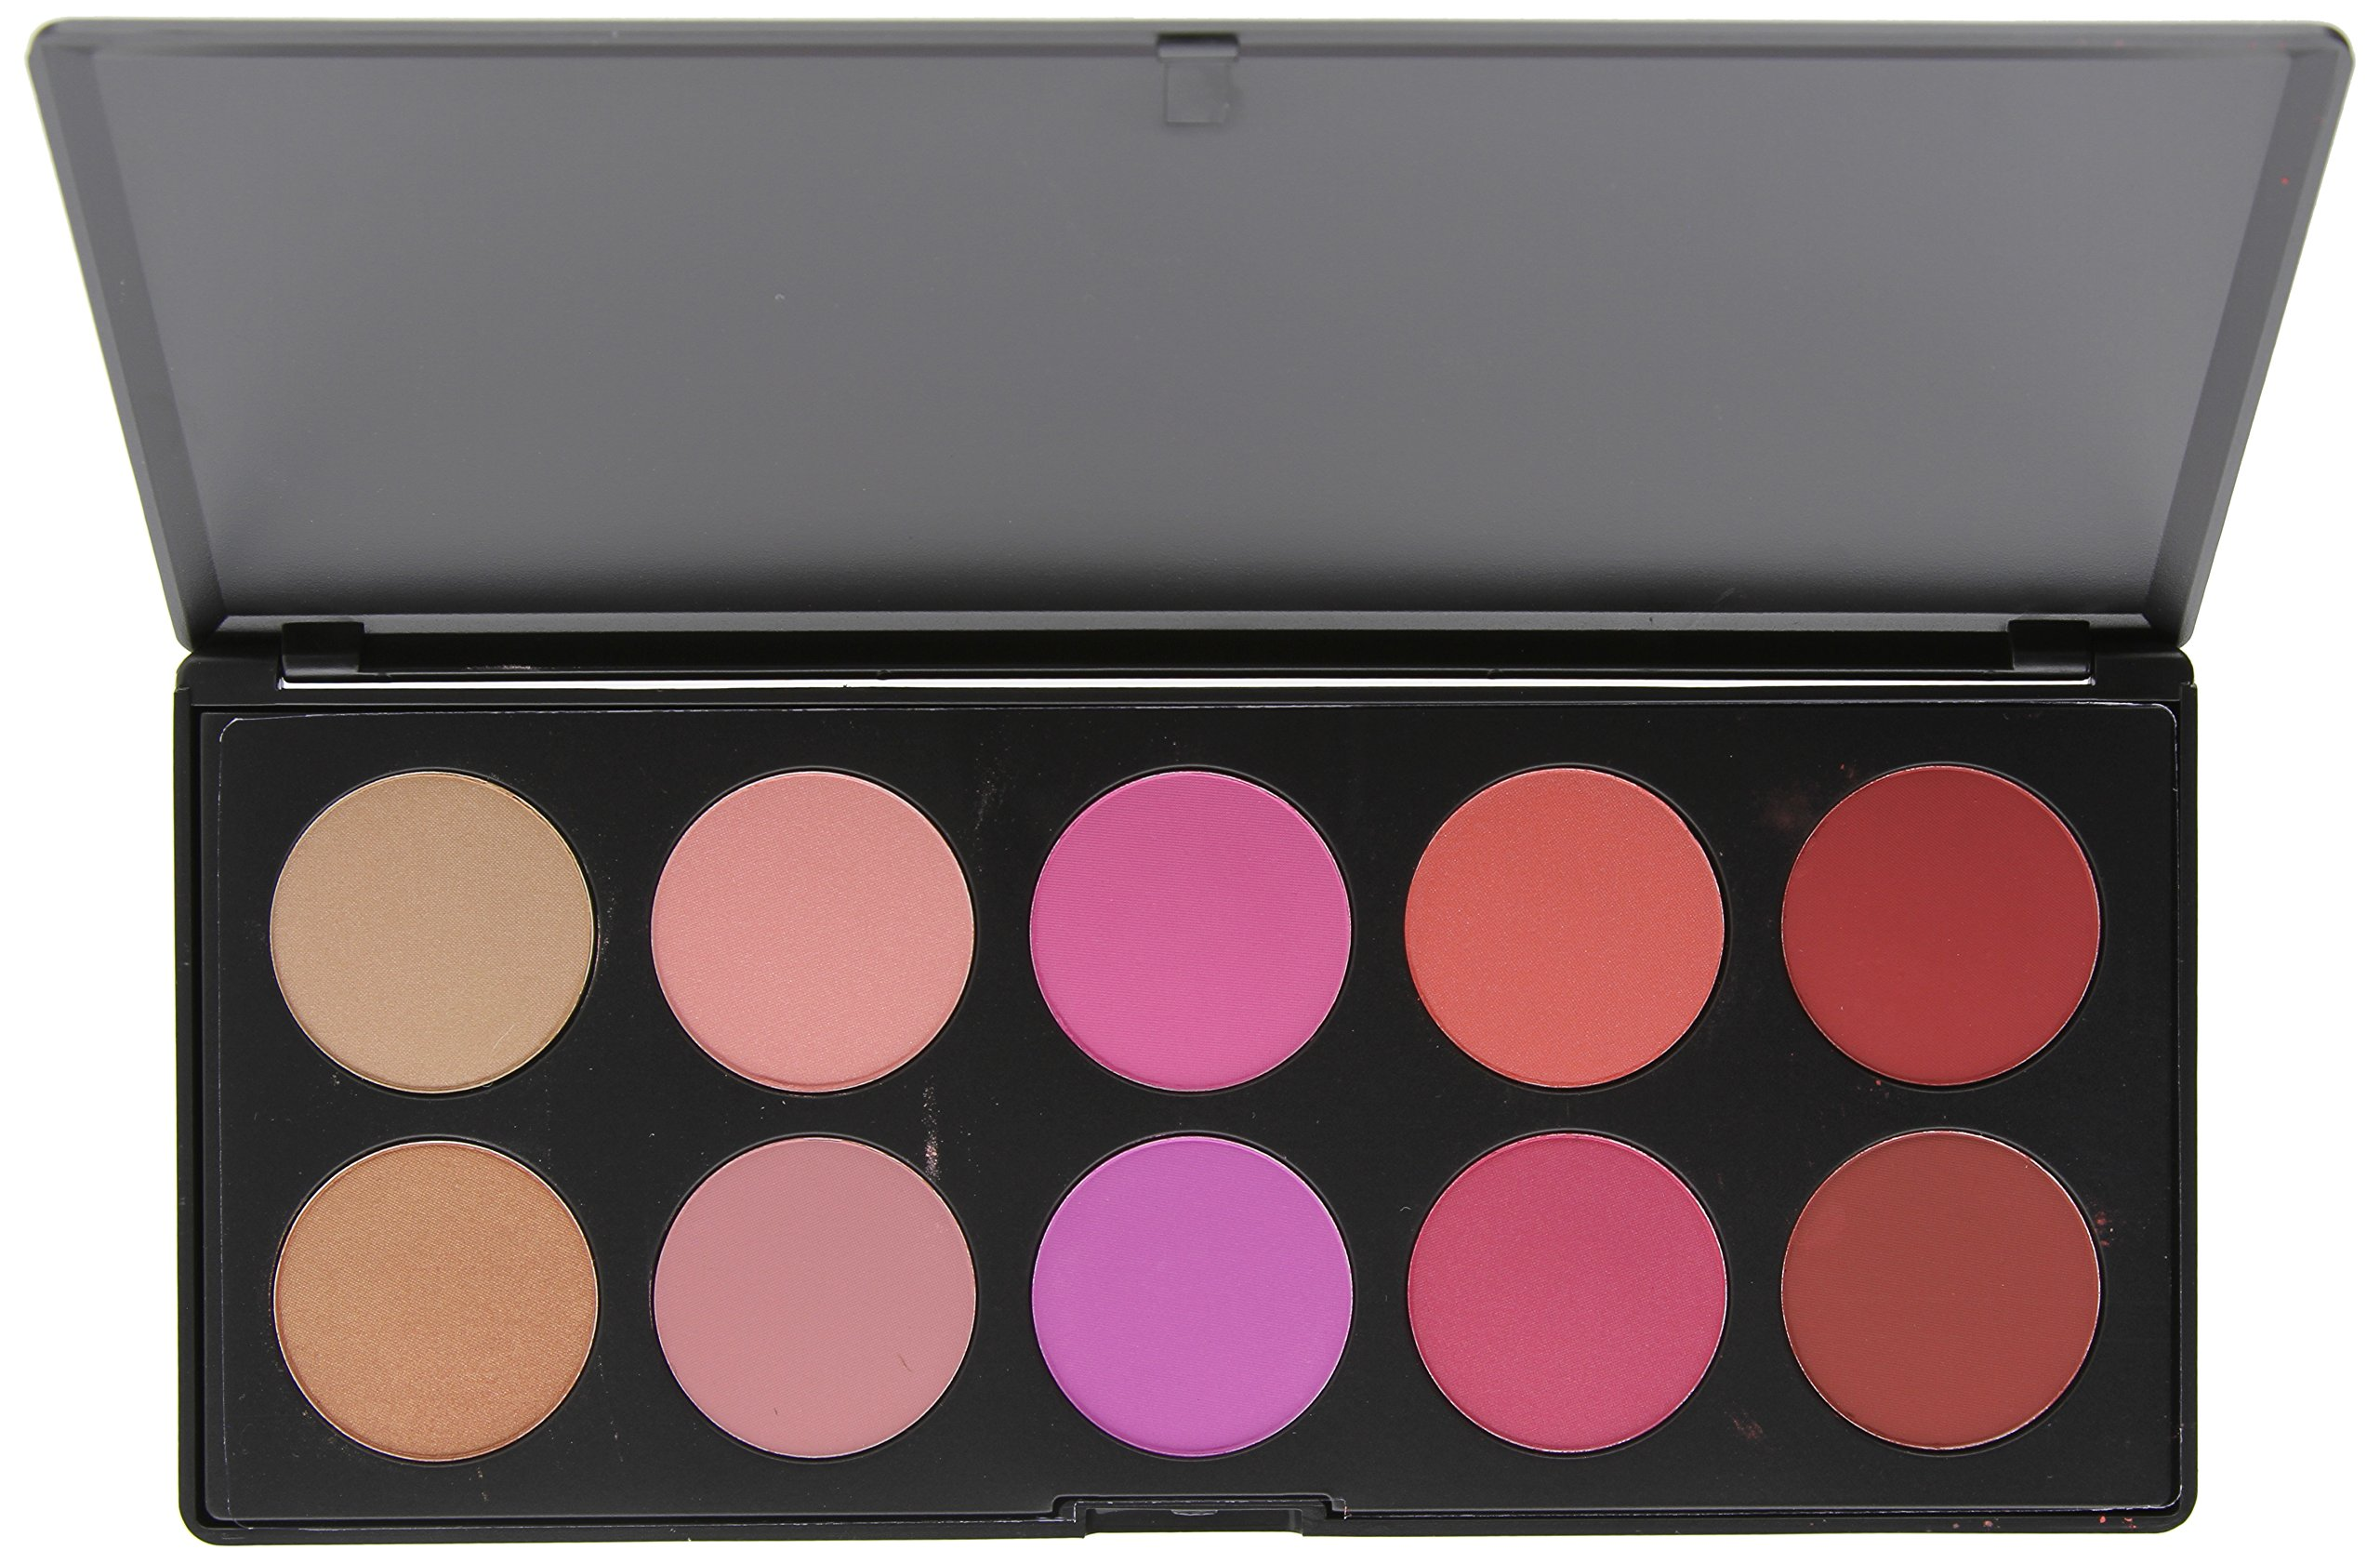 BH Cosmetics 10 Color Blush Palette, Glamorous